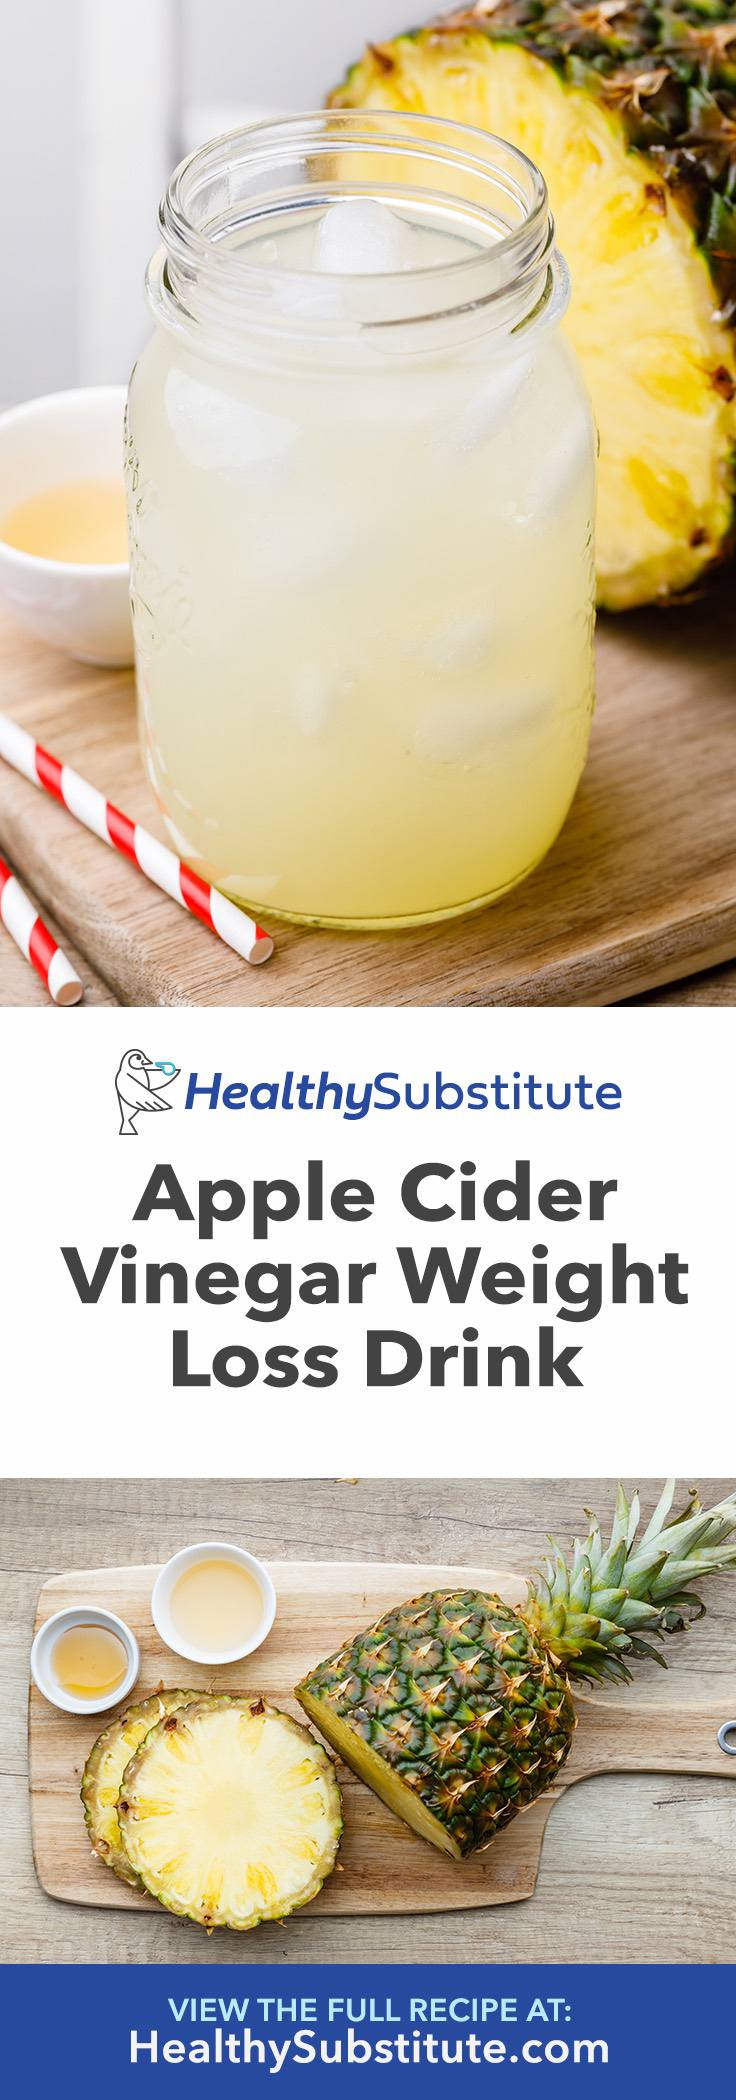 Light Apple Cider Vinegar Weight Loss Drink That's Gentle on Your Stomach